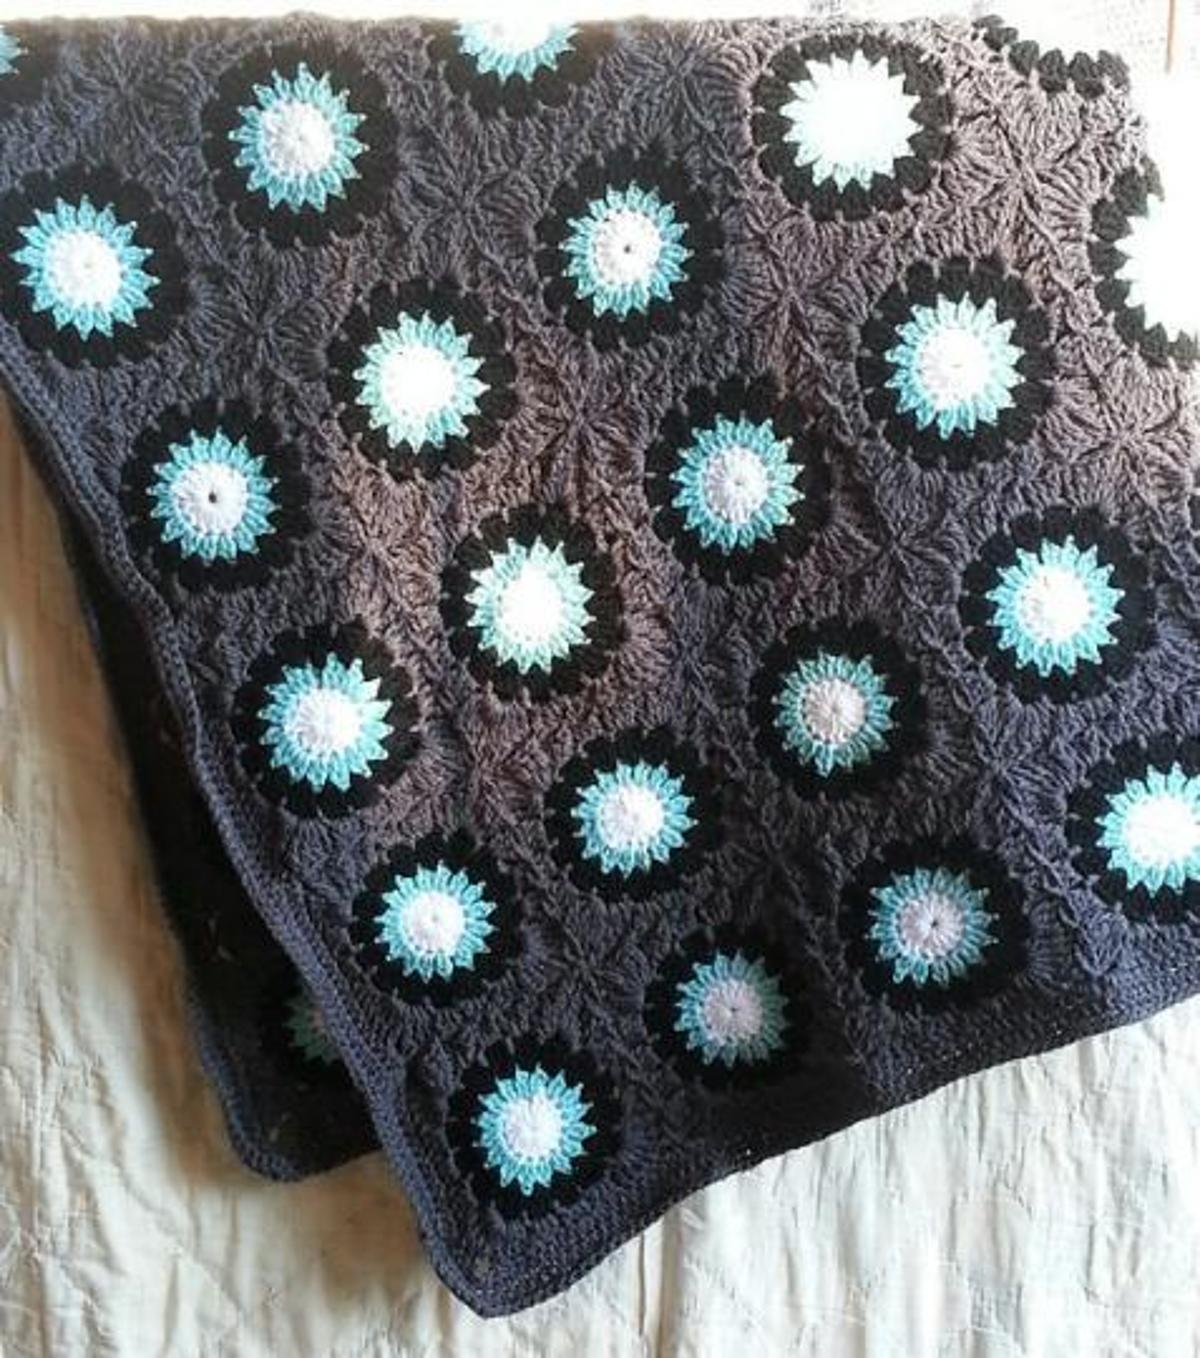 flower sunburst granny square crochet pattern